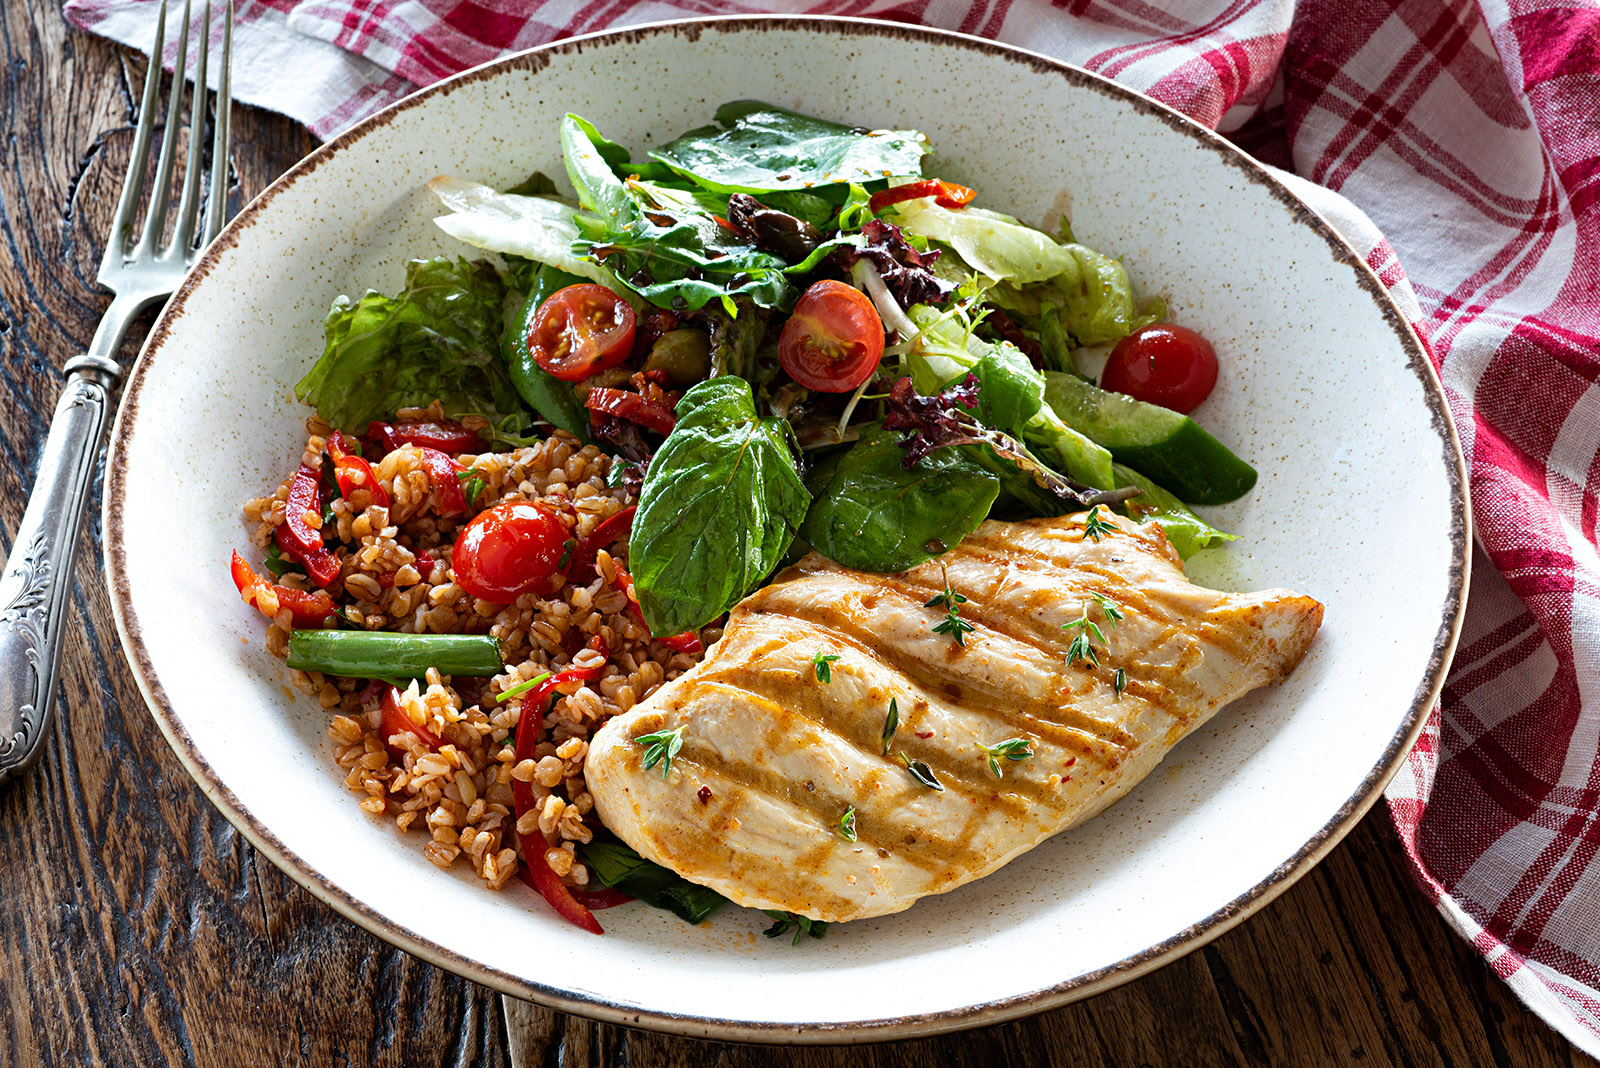 Chicken breast with bulgur tabbouleh and green salad